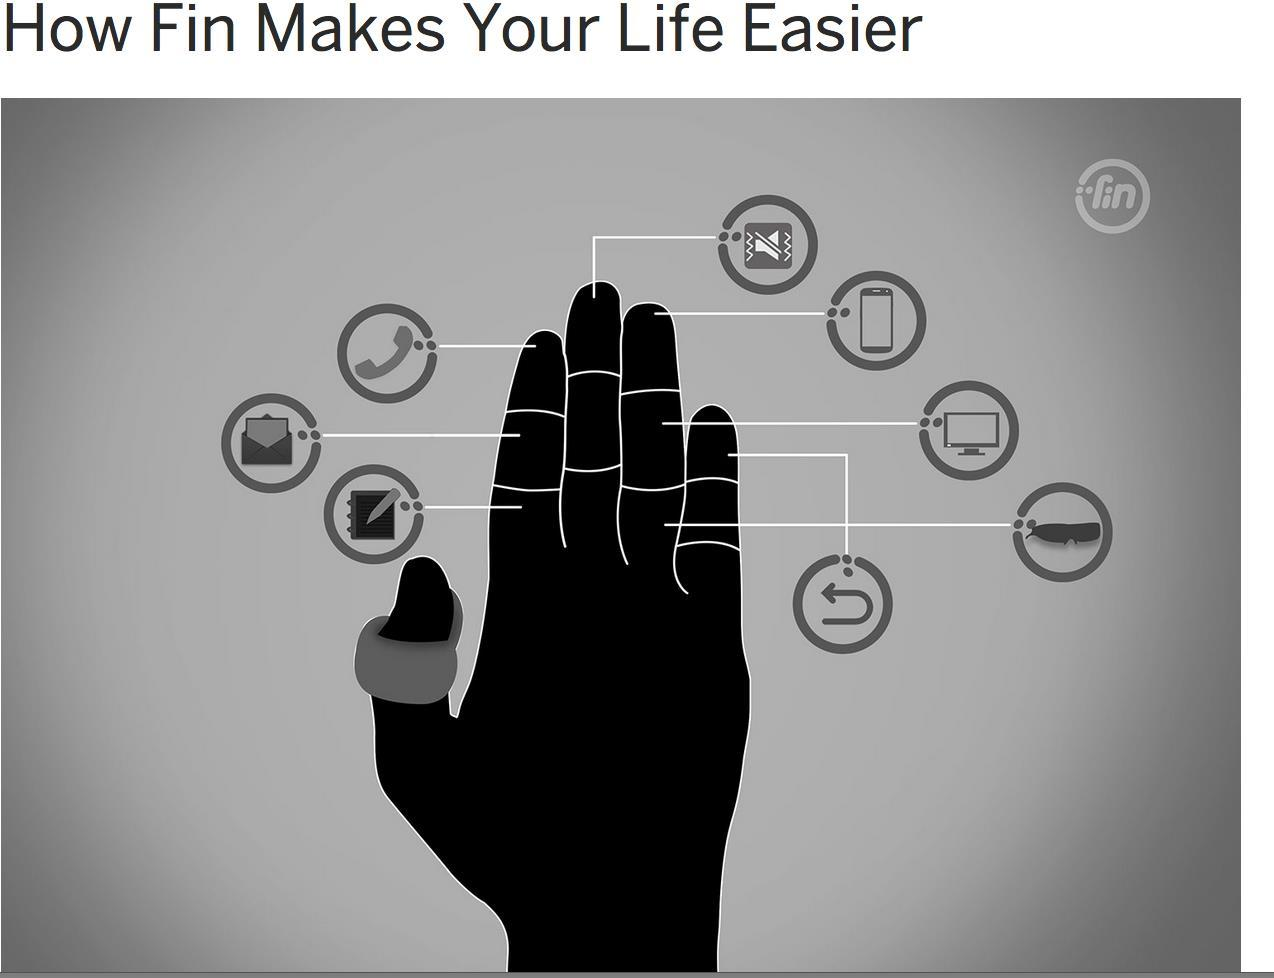 F:\16.4\images\Seigworth figure how fin makes your life easier.jpg